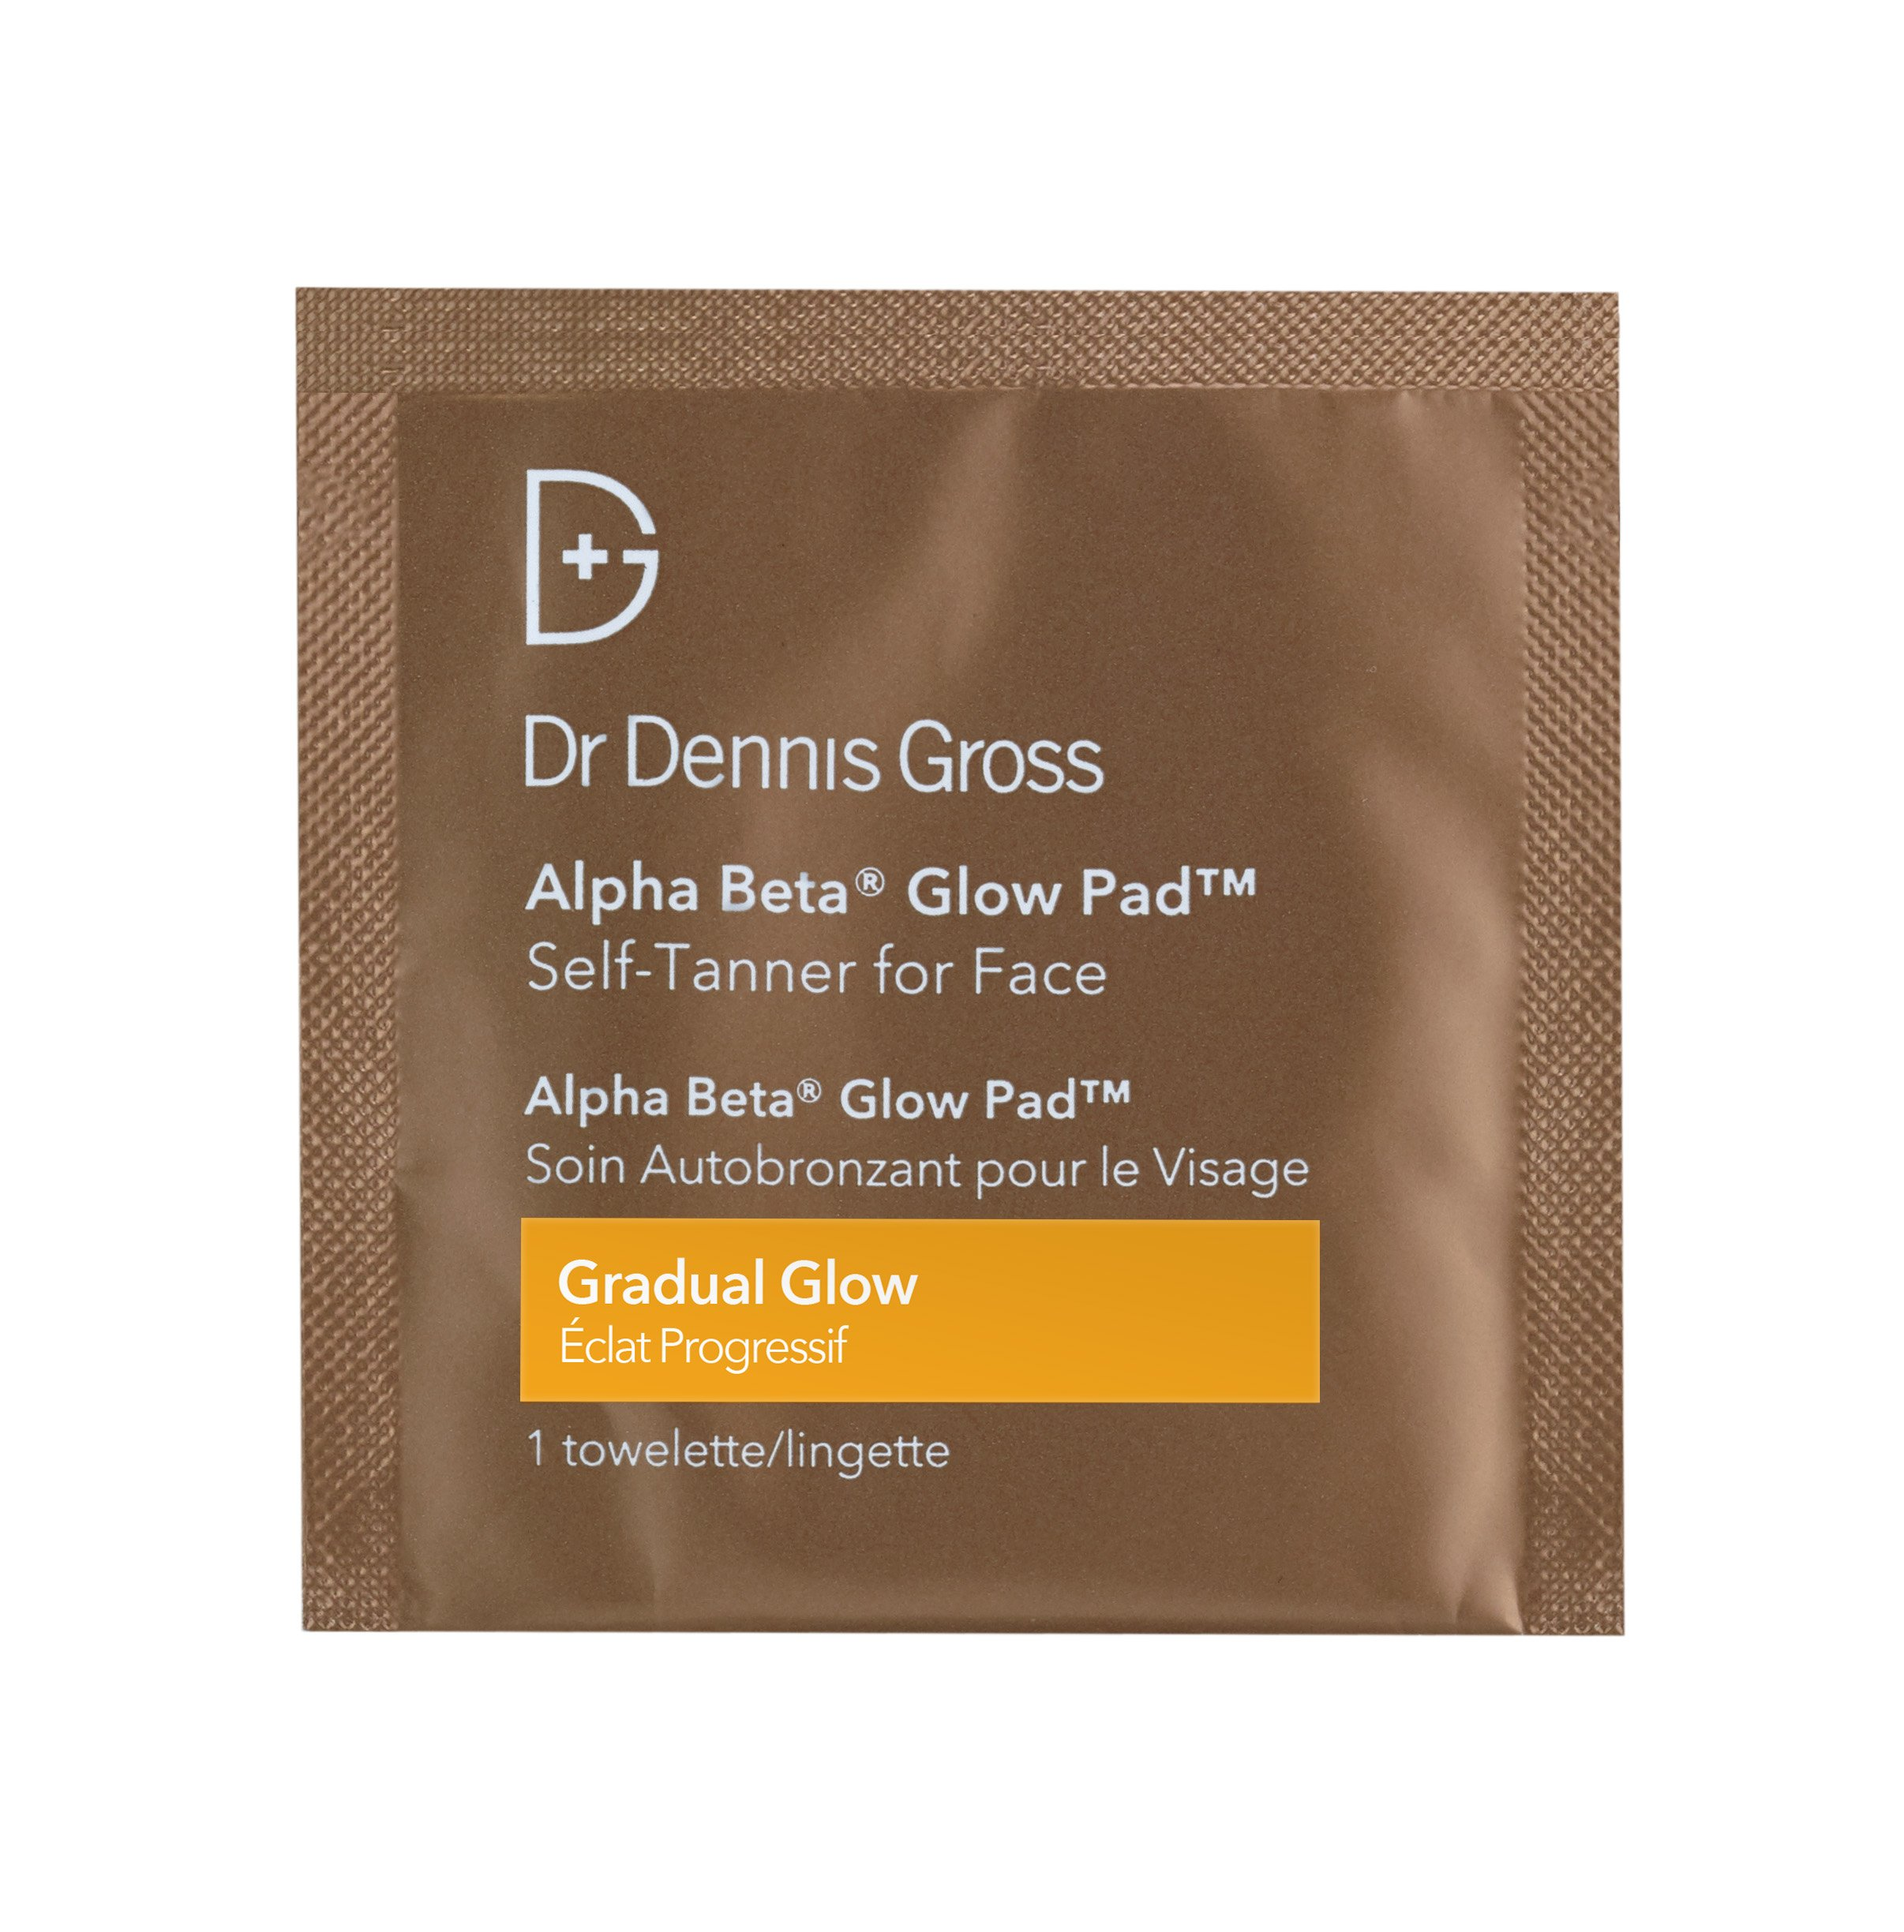 Dr. Dennis Gross Alpha Beta Glow Pad Self-Tanner for Face | Gradual Glow - 20 Towelettes .07 fLoZ / 2.2 mL each by Dr. Dennis Gross Skincare